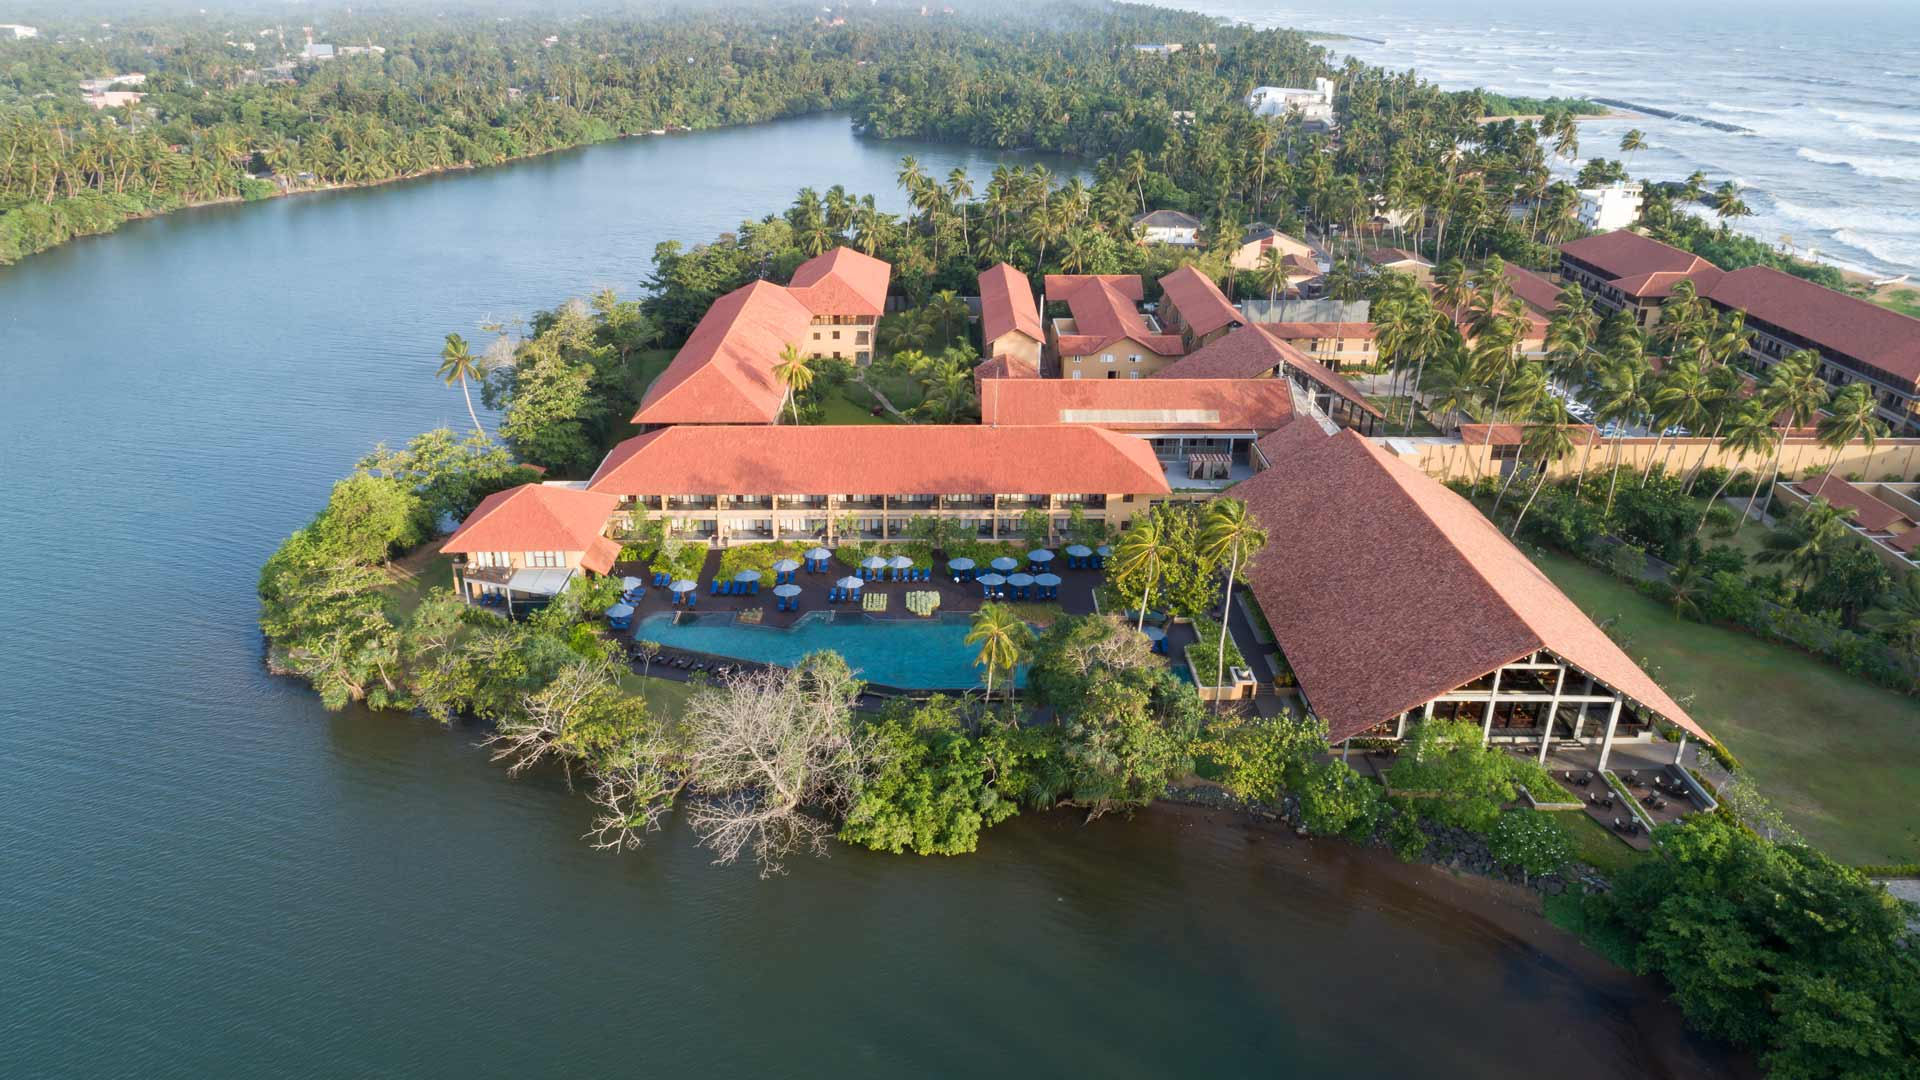 https://assets.anantara.com/image/upload/q_auto/media/minor/anantara/images/anantara-kalutara-resort/the-resort/anantara_kalutara_header_banner_w1920xh1080.jpg